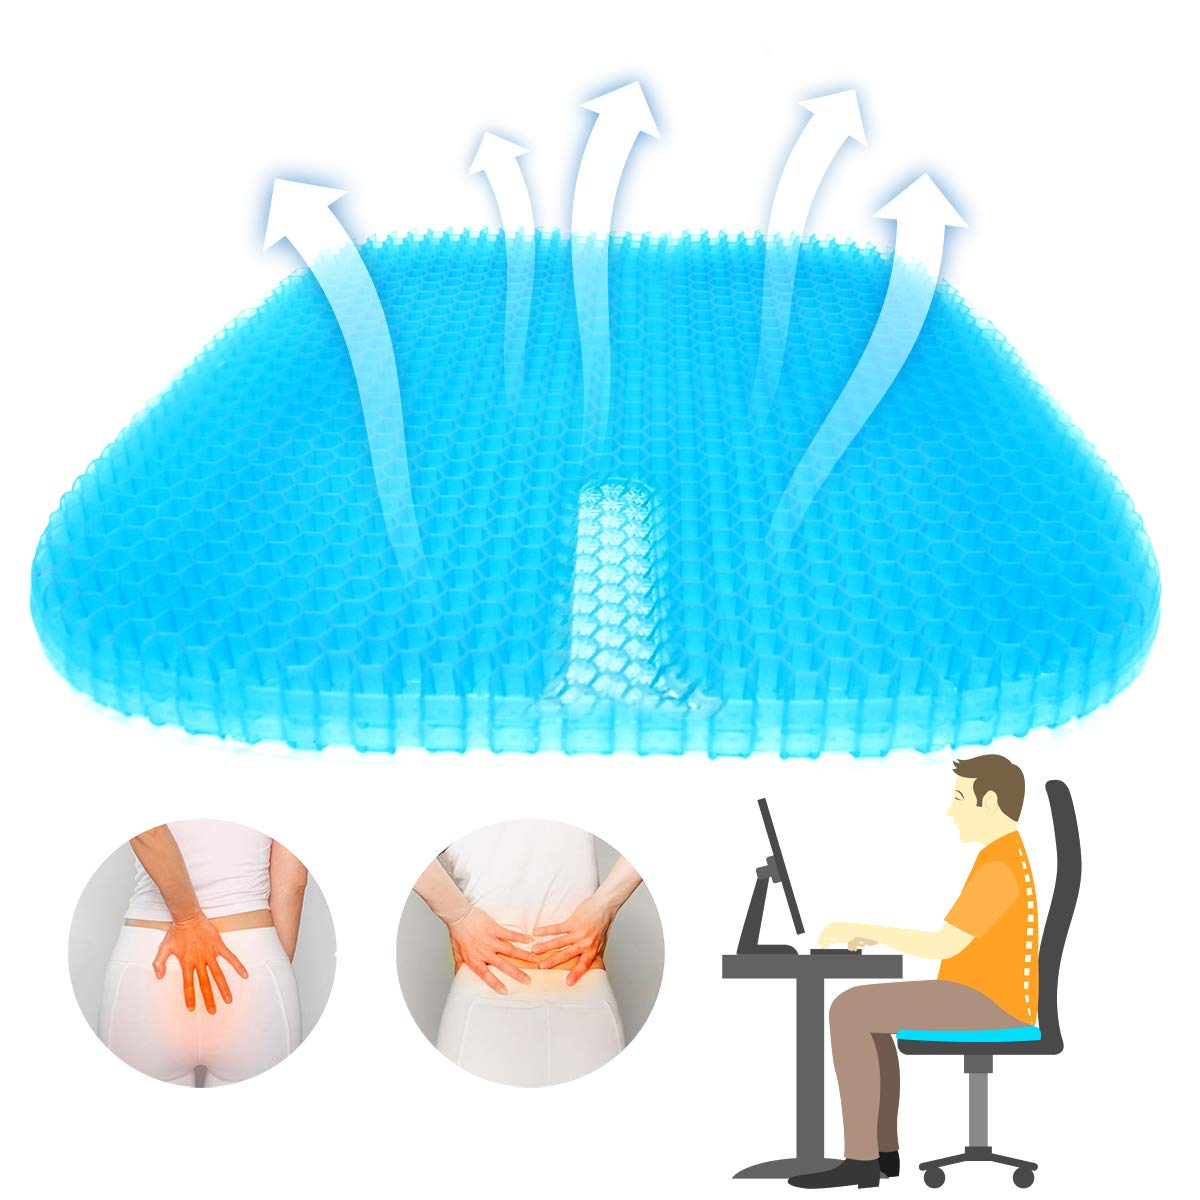 SUPTEMPO Seat Cushion, Gel Seat Cushion with Non Slip Mesh Seat Cover Large Seat Cushion for Home Cars Office Chairs Pressure Relief Tailbone Pain